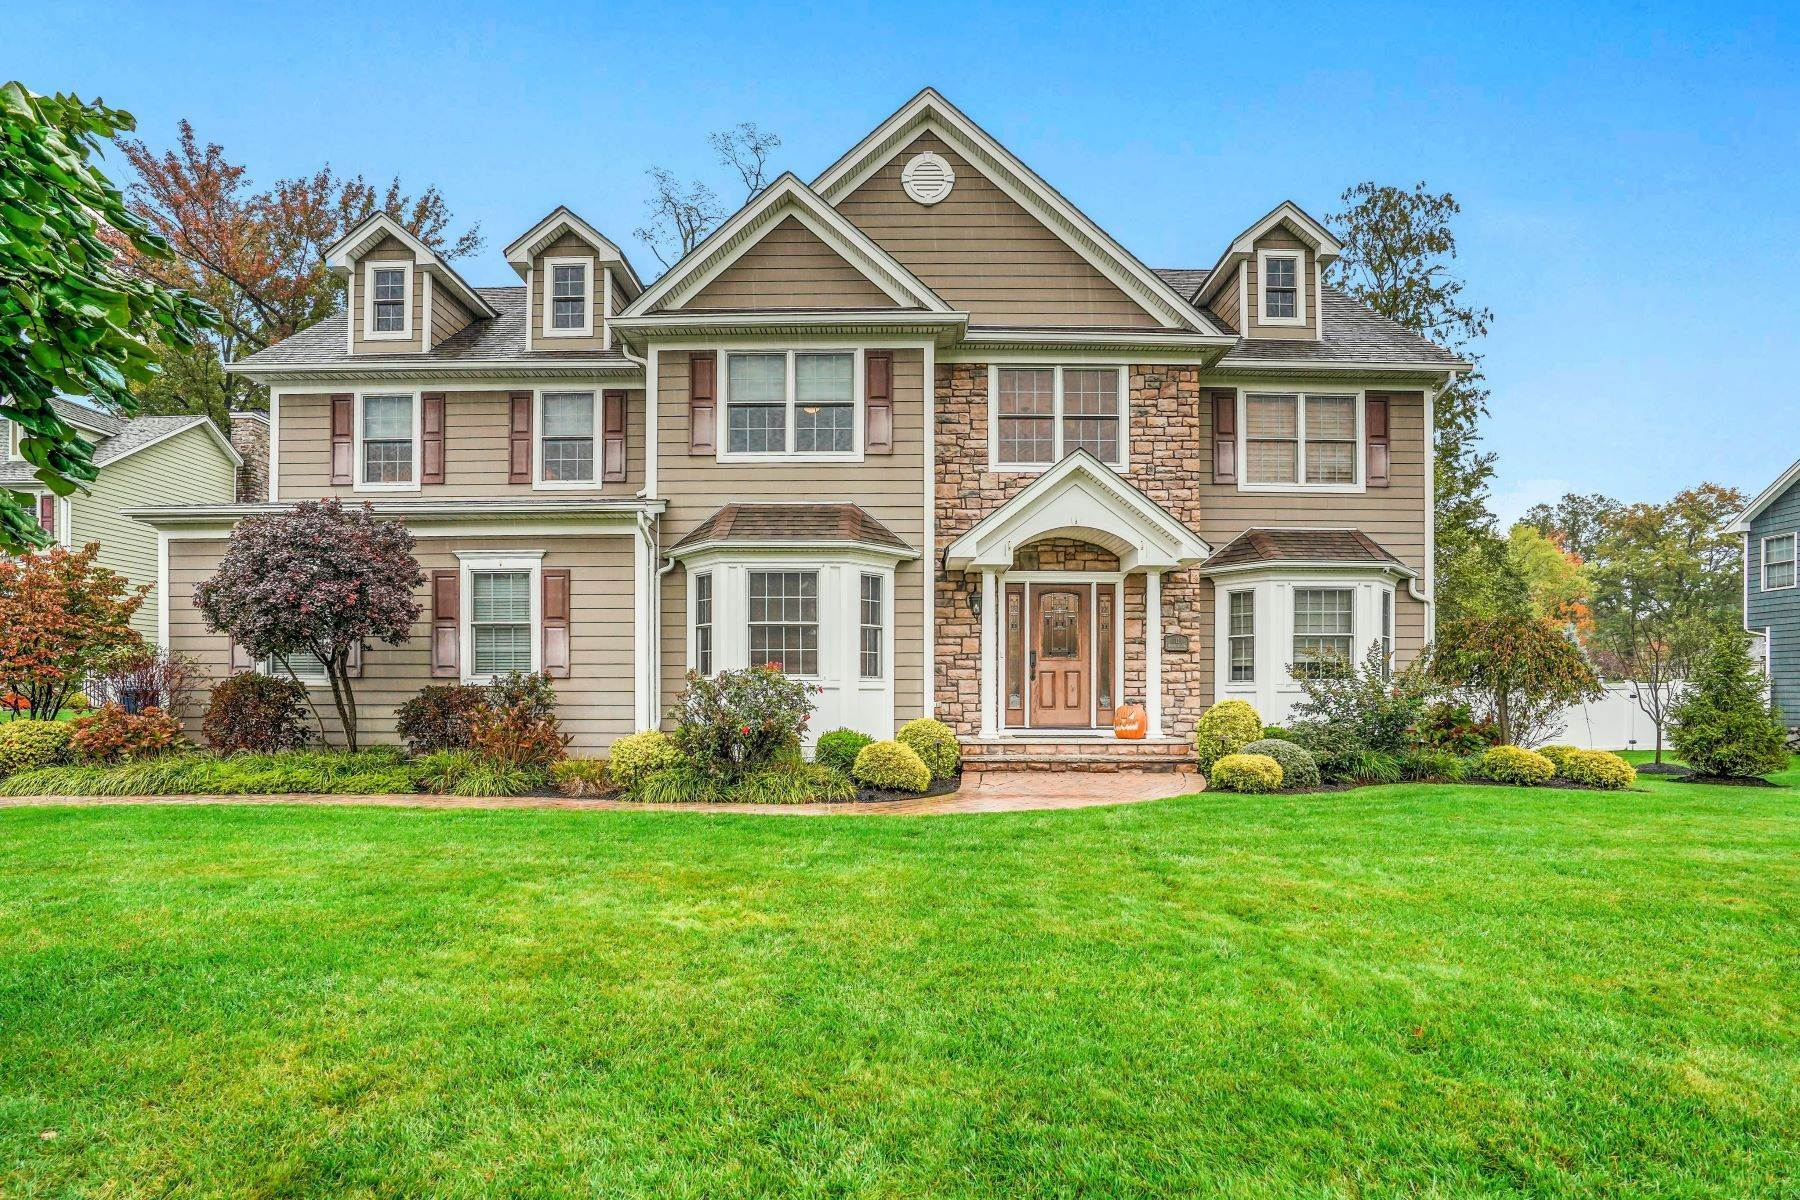 Single Family Homes for Sale at Perfect For Today's Living 11 Hidden Meadow Drive Scotch Plains, New Jersey 07076 United States